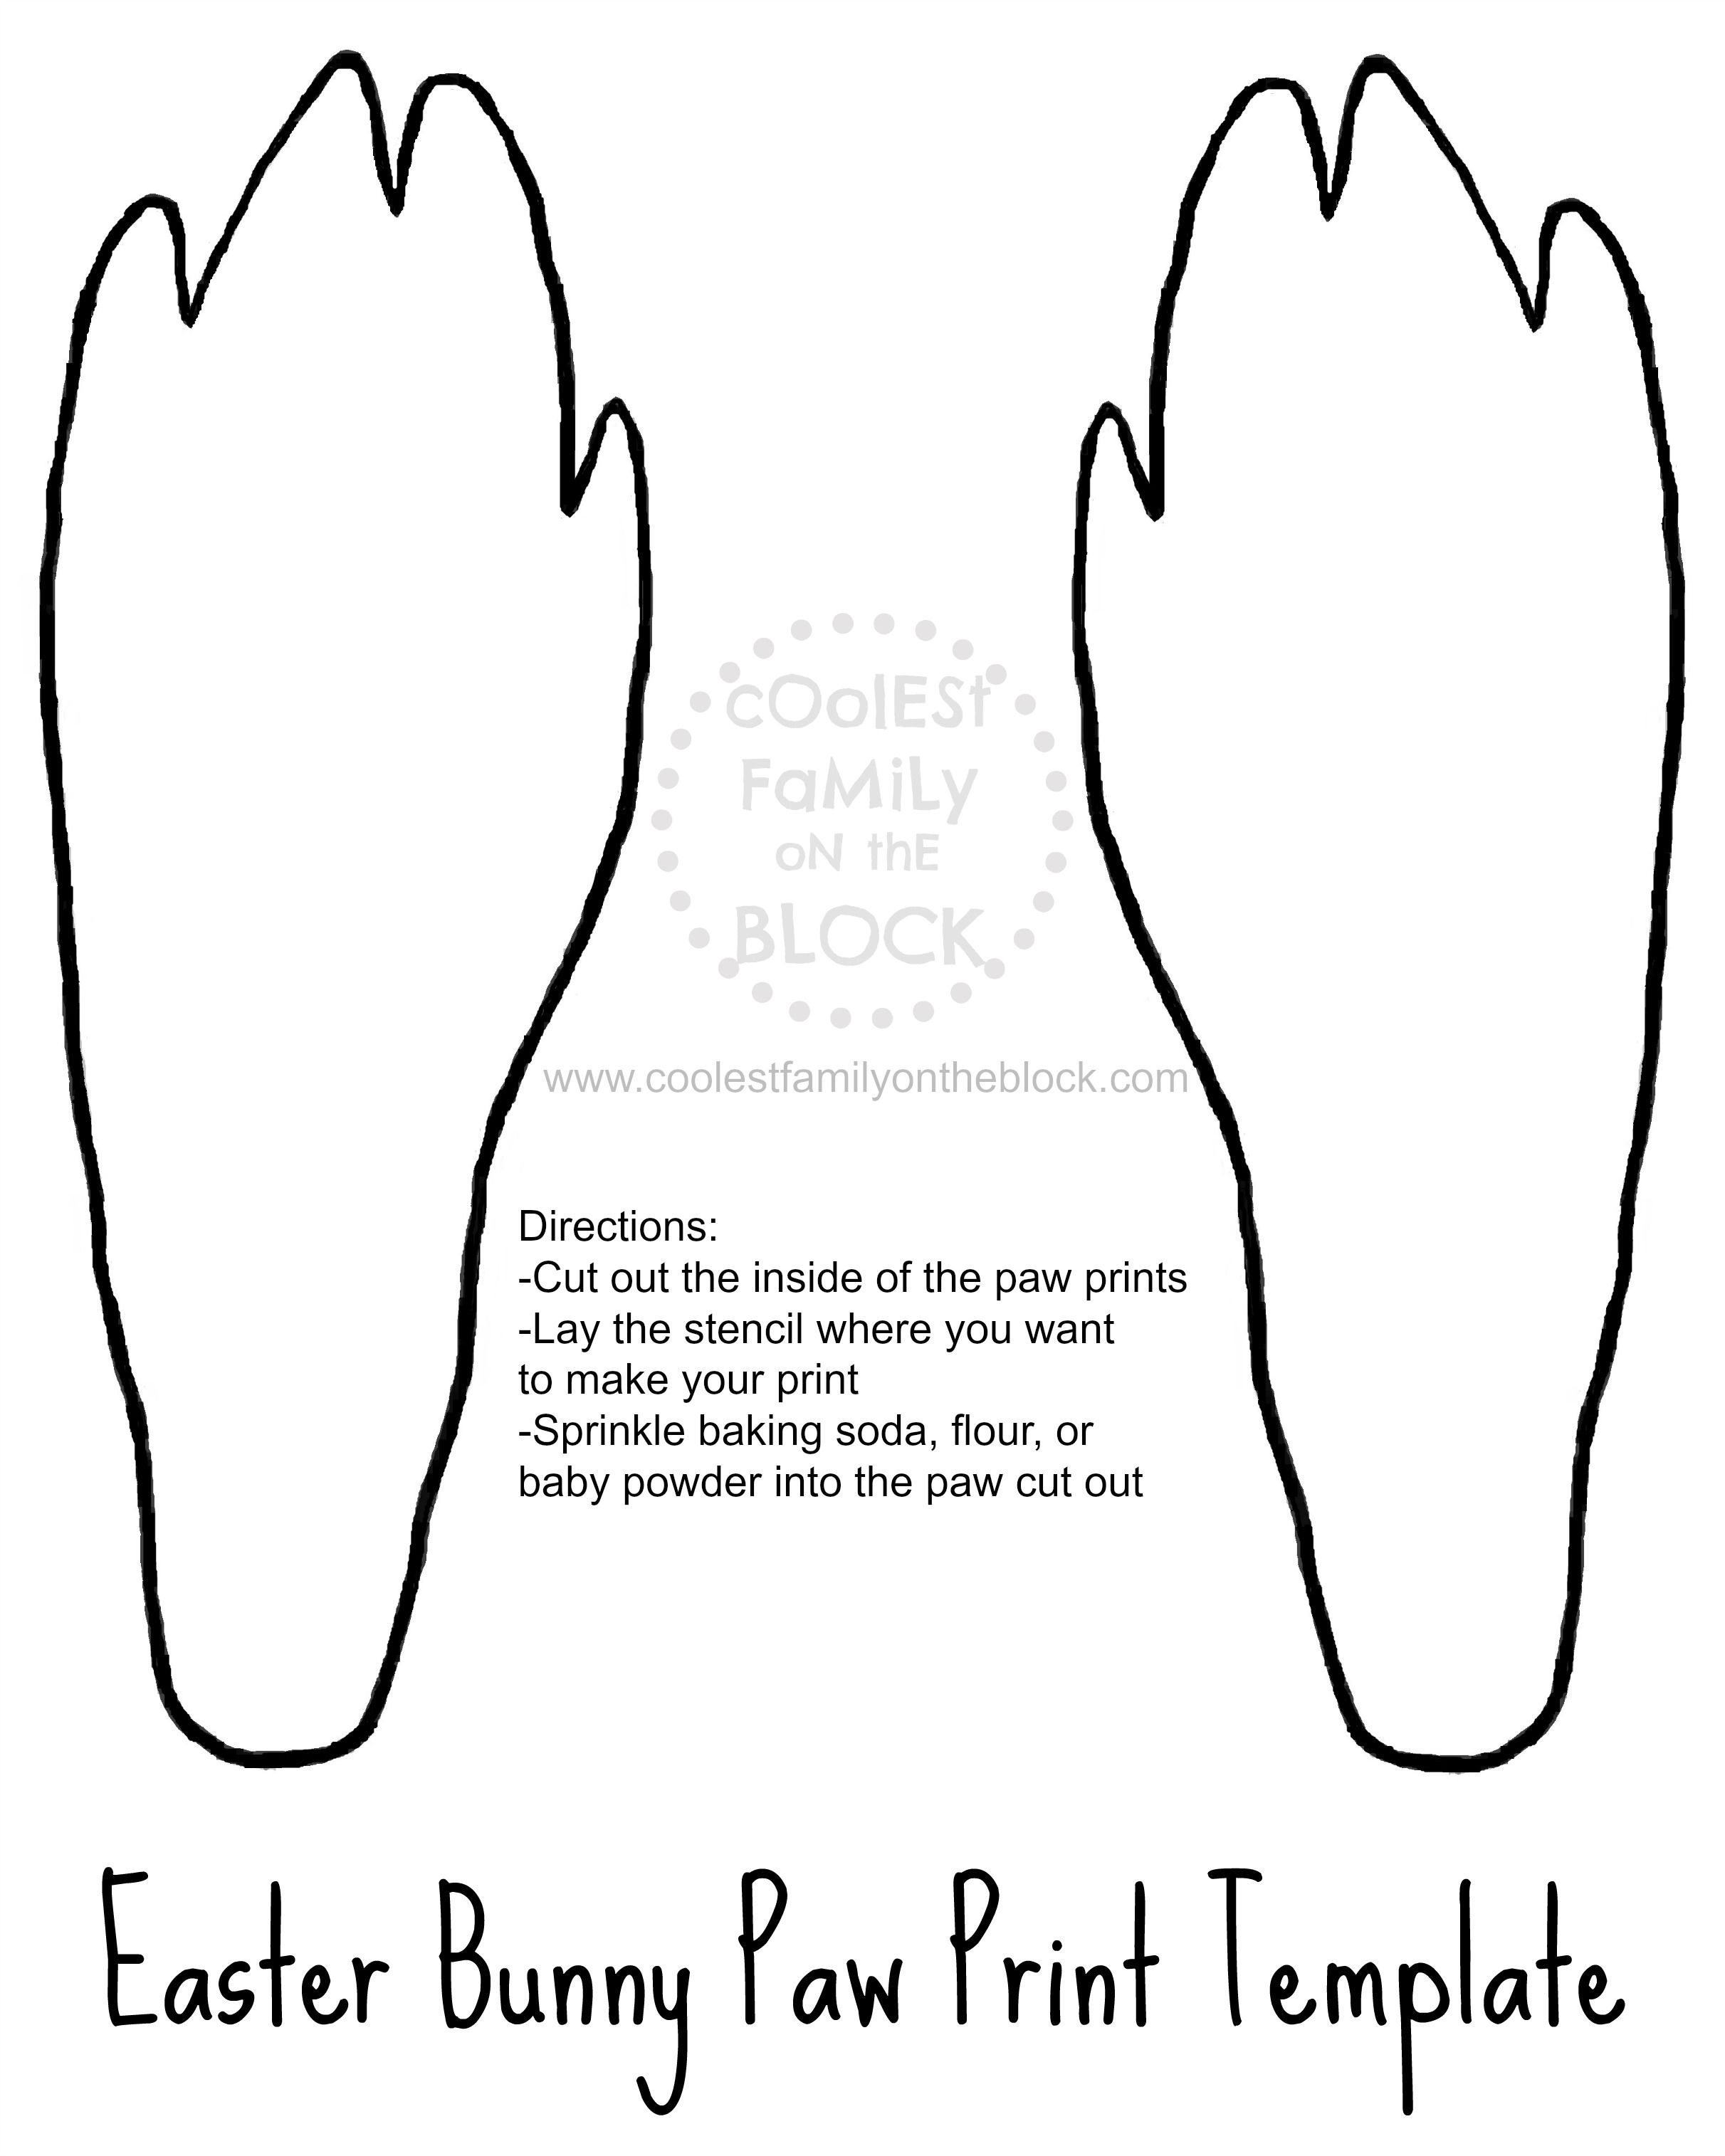 image regarding Printable Easter Bunny Footprints identify No cost Printable Easter Bunny Paw Prints Template: Back again Paws